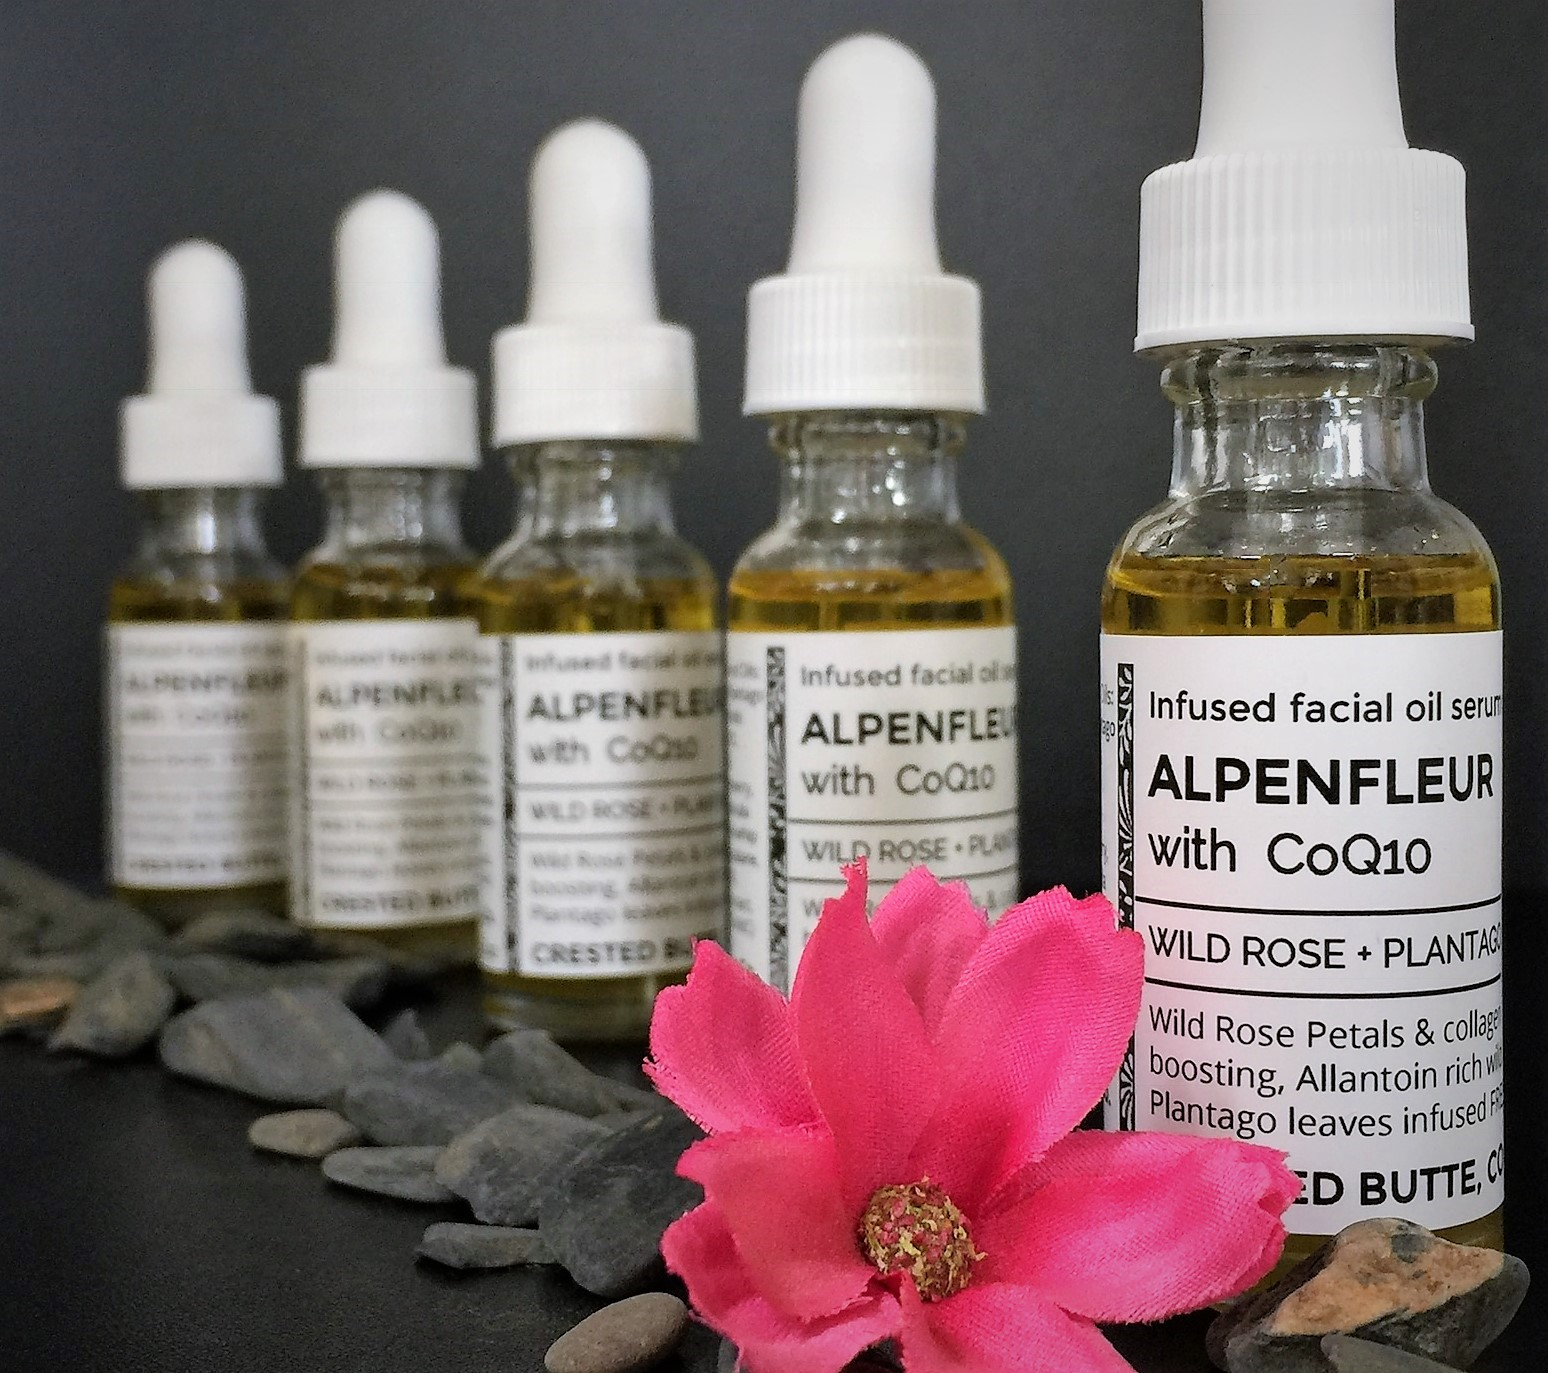 - WILD ROSE PETALS + PLANTAGO LEAF INFUSED FACIAL OIL BLEND with COQ10, Frankensence, Helicrysum, Neroli